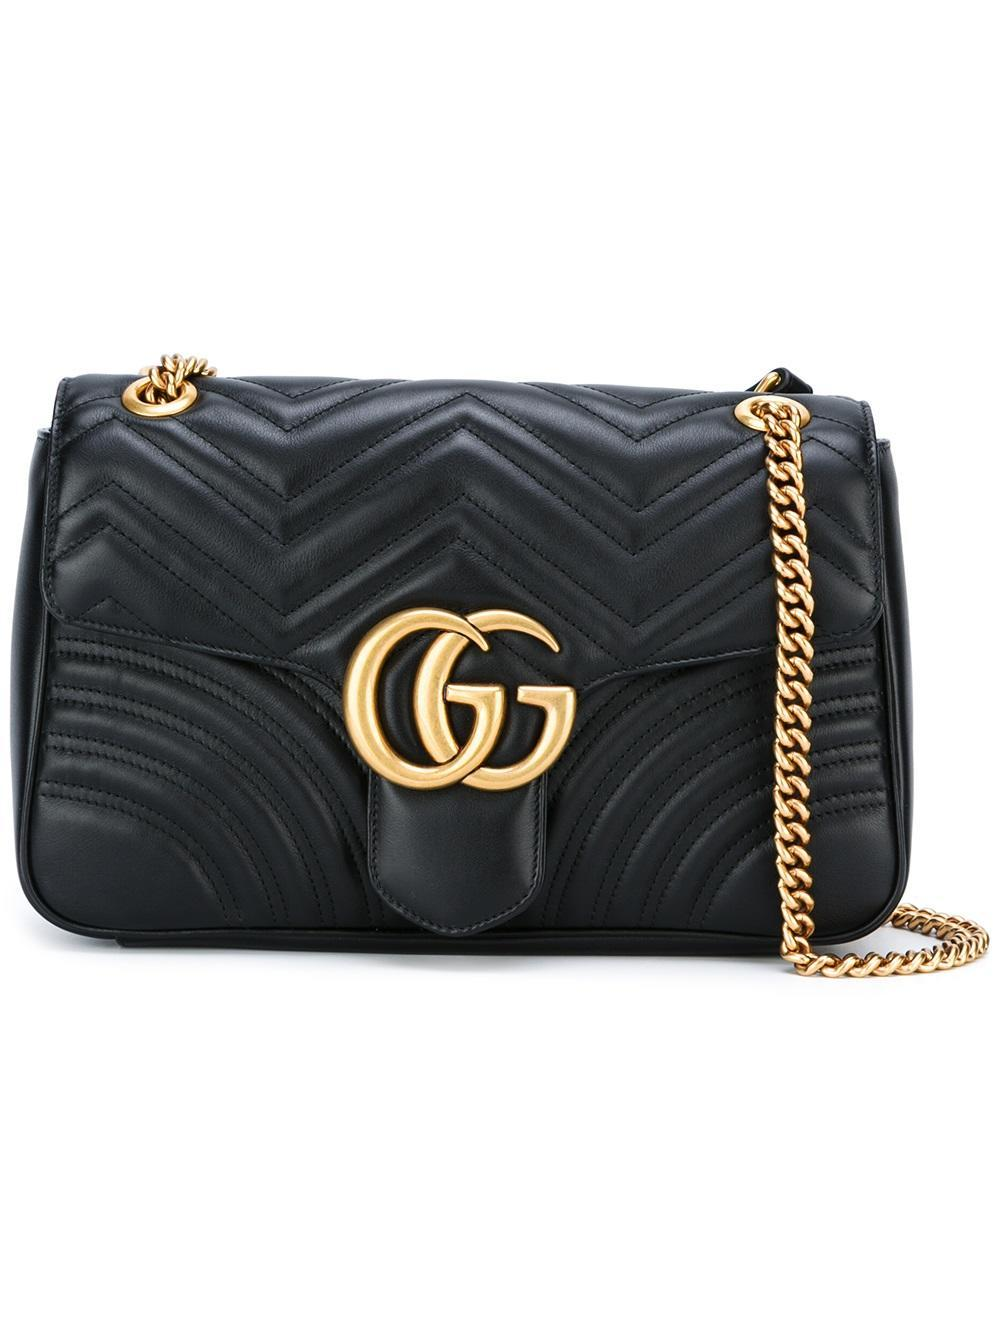 Lyst - Gucci Marmont Large Bag